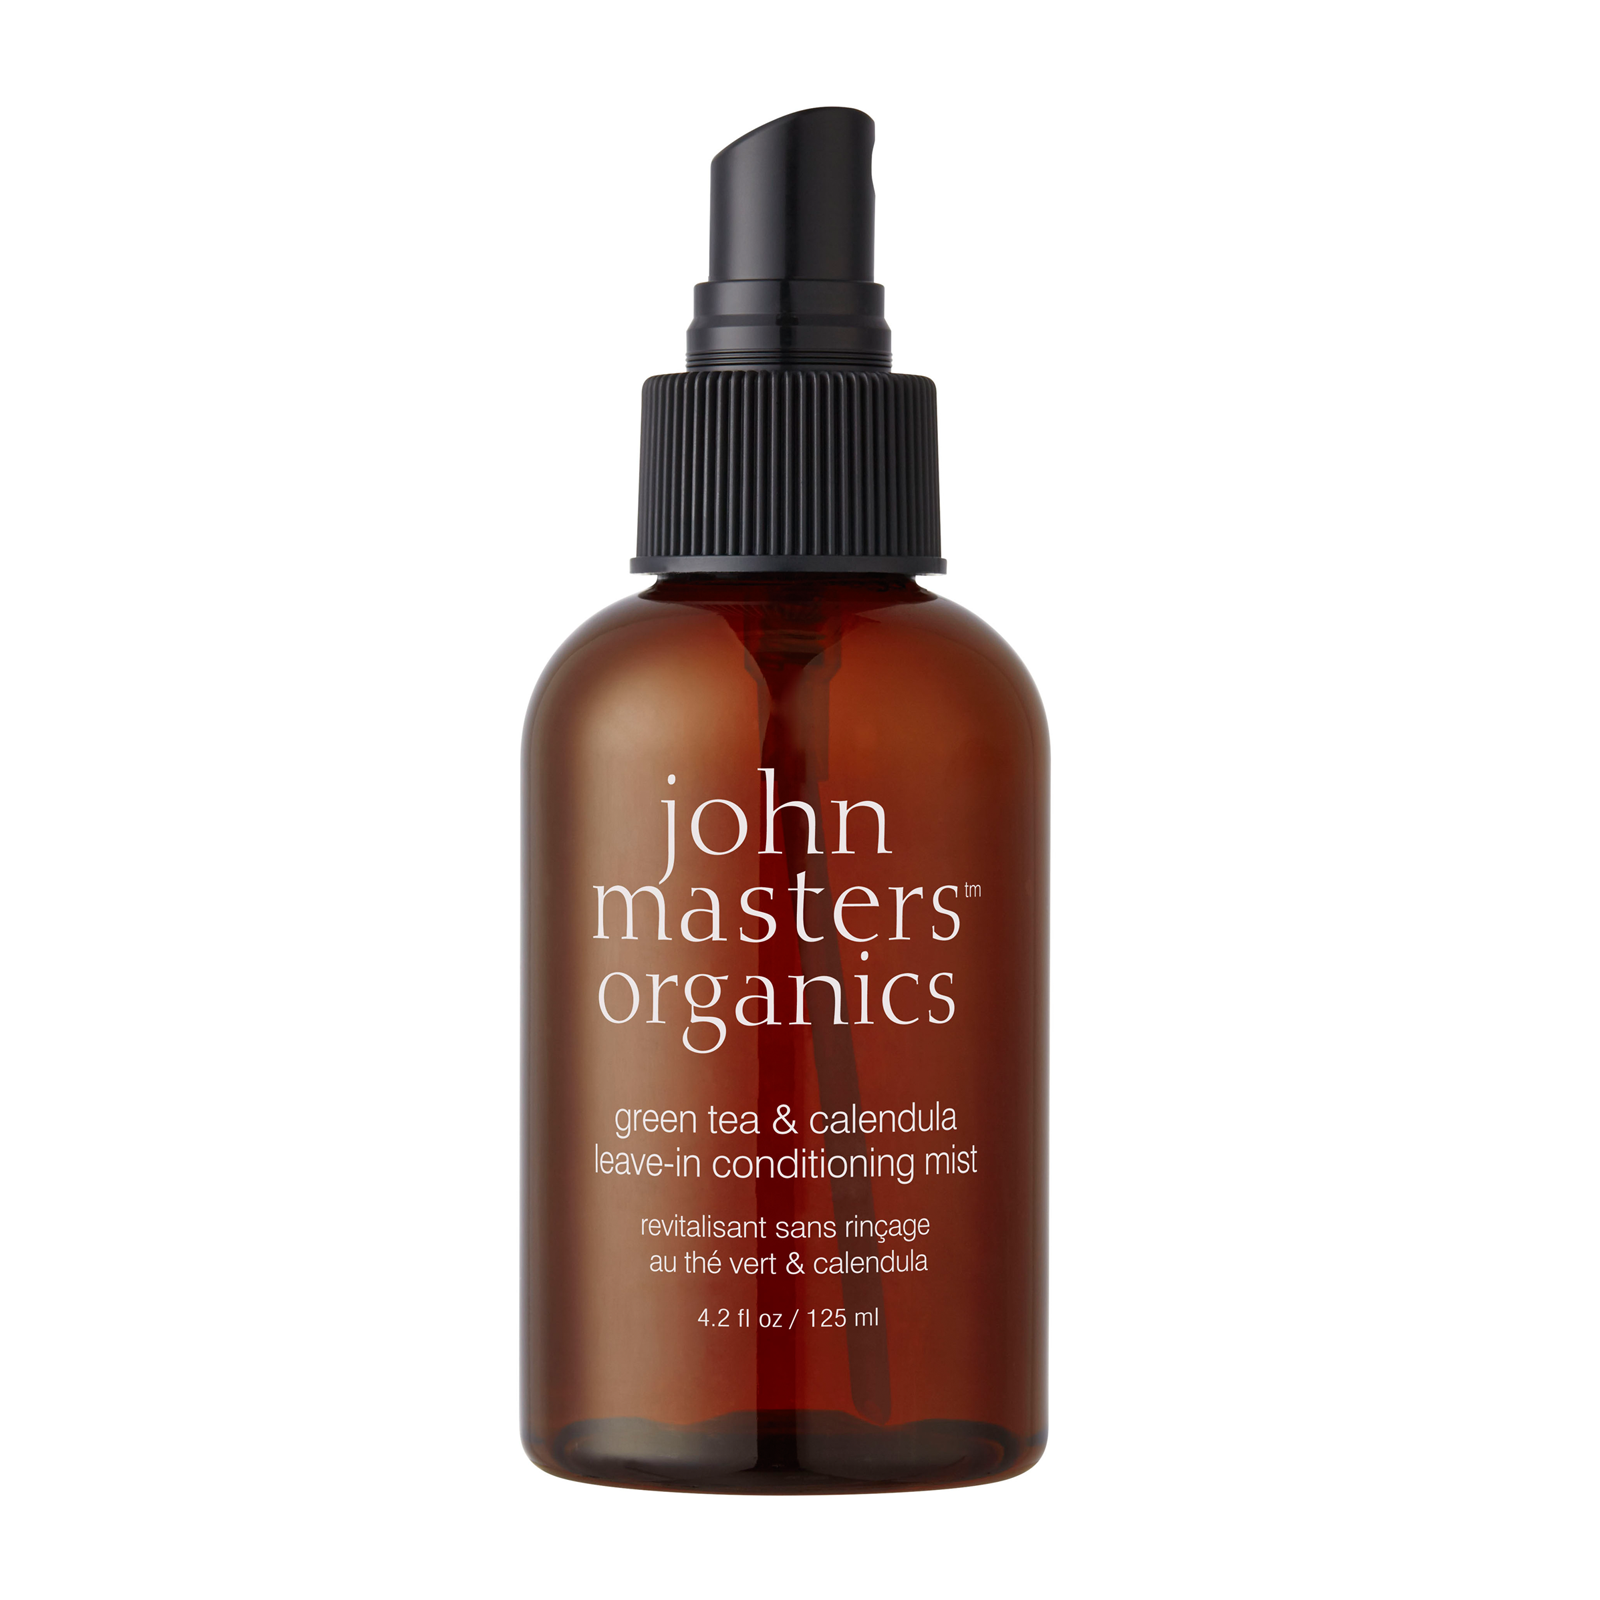 John Masters Organics Green Tea & Calendula Leave-In Conditioning Mist 125ml